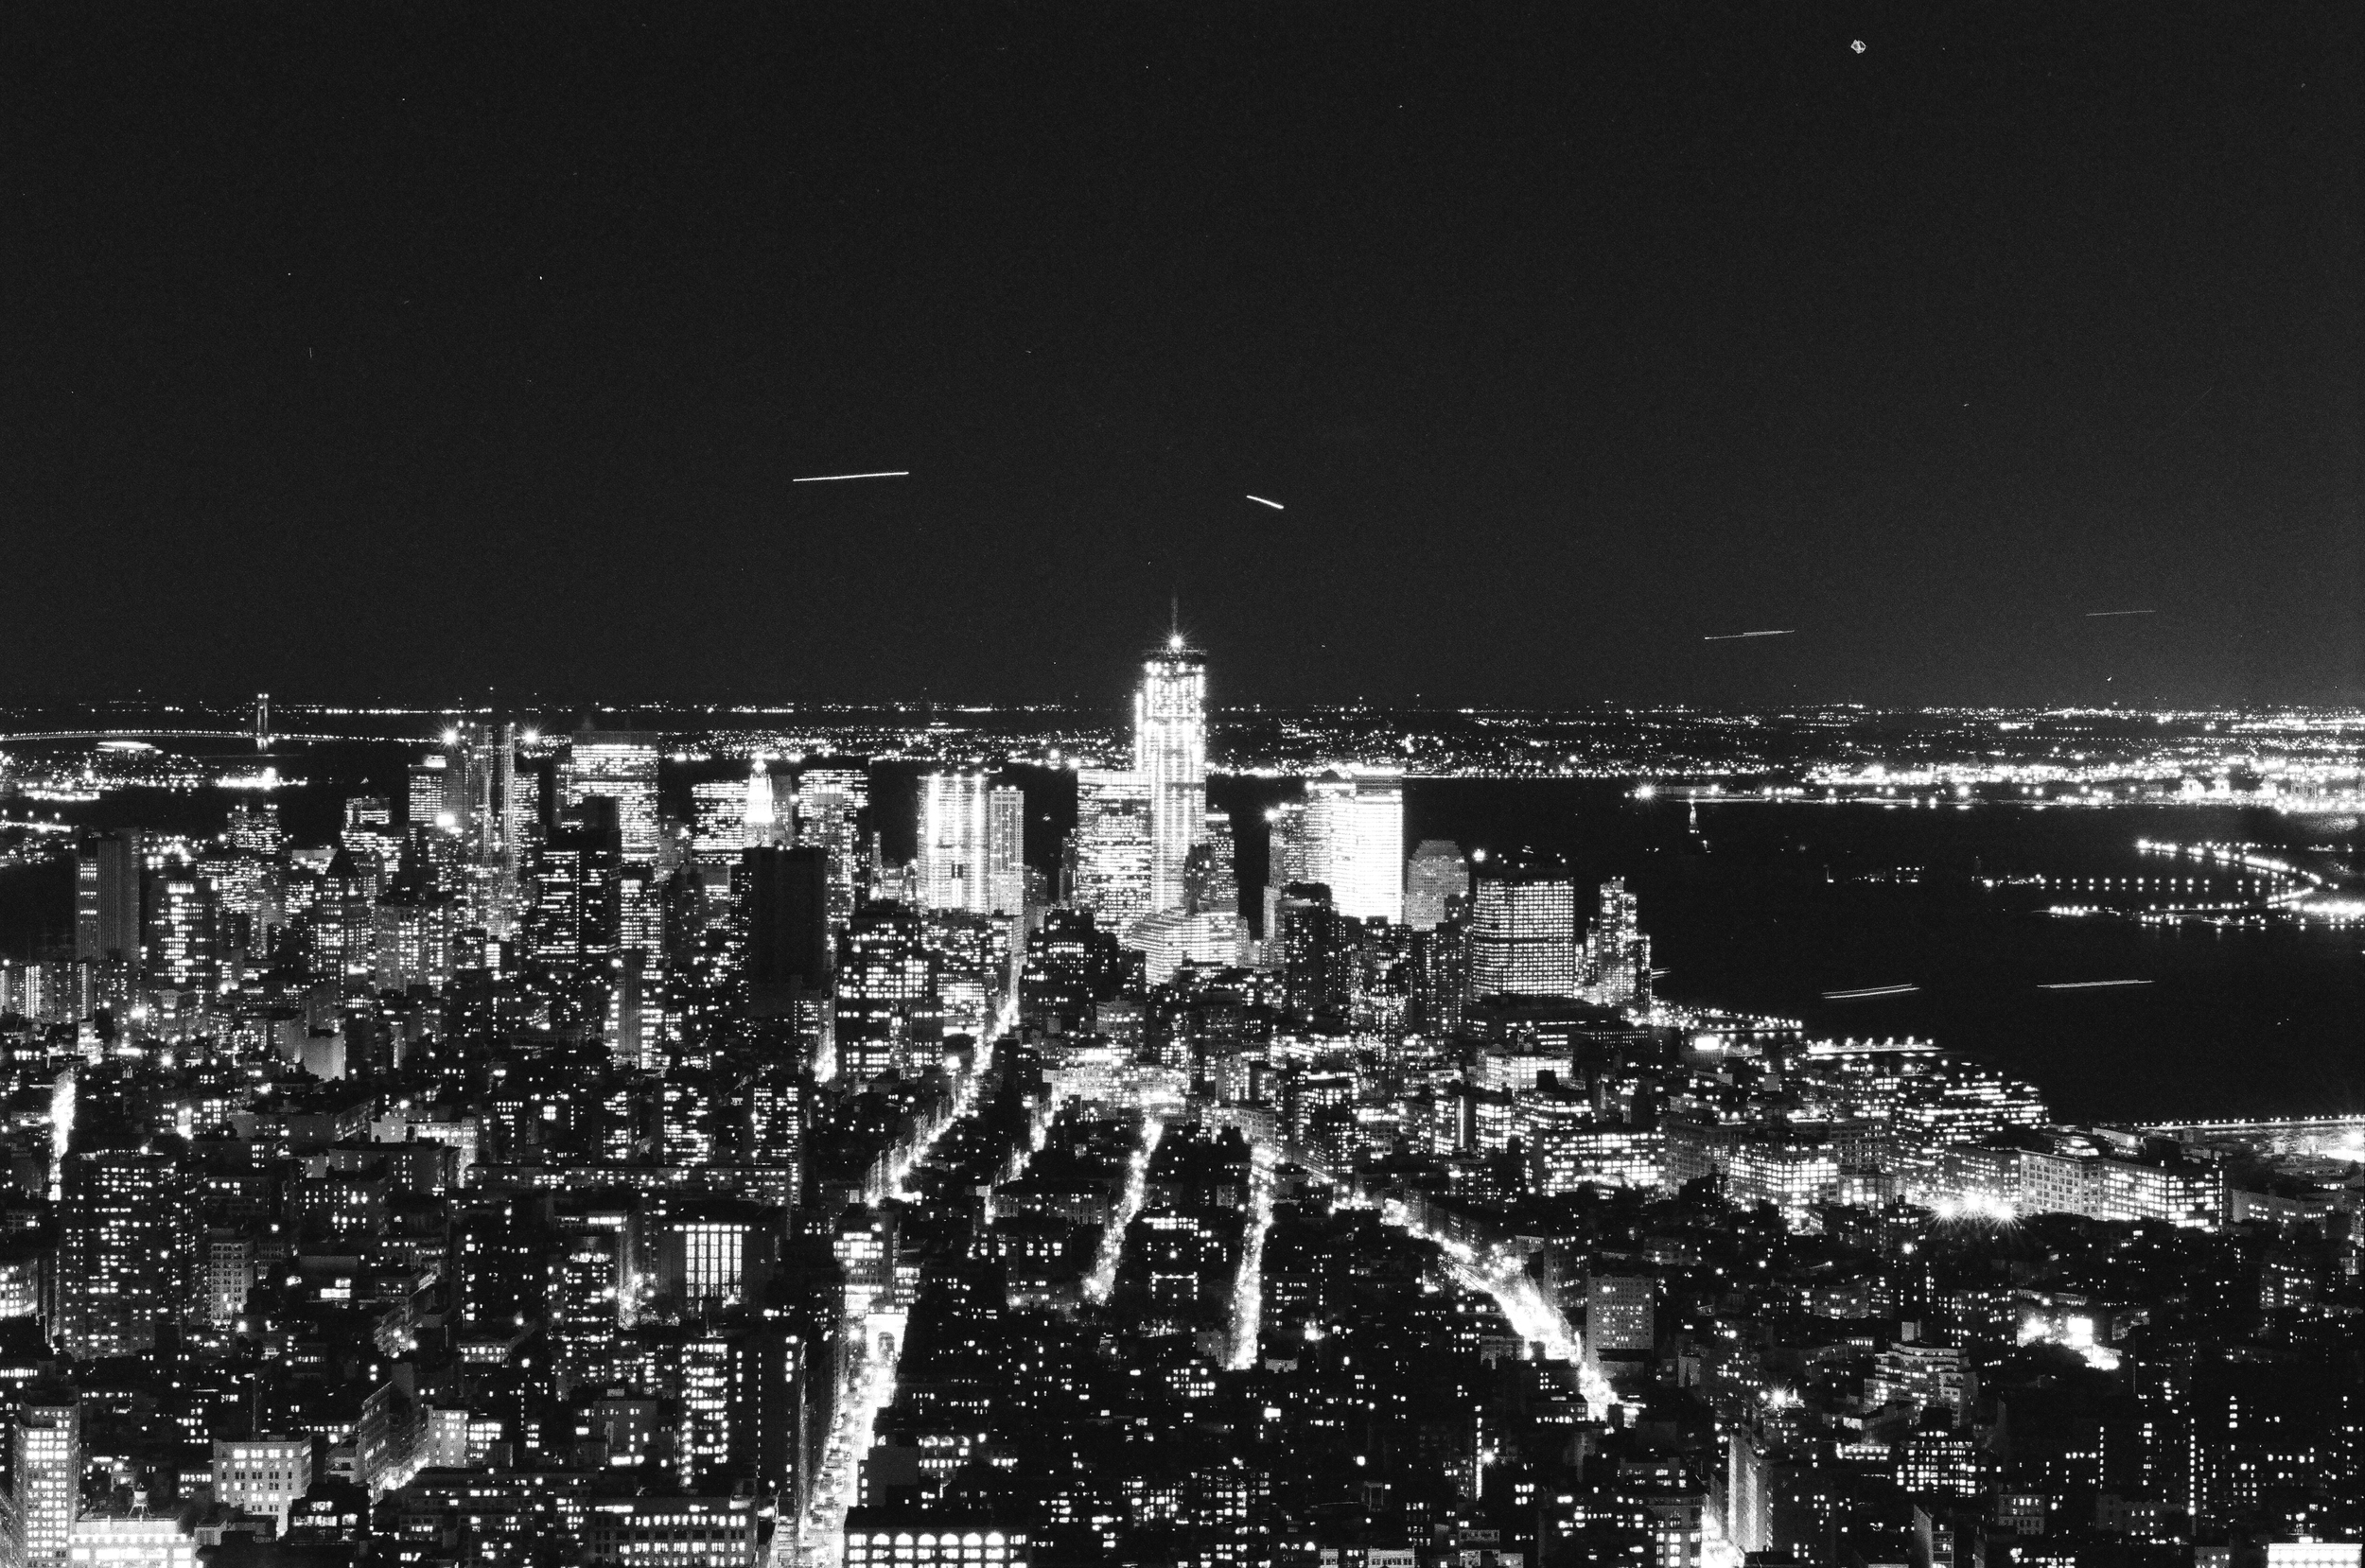 New York City B&W Image 5.jpg